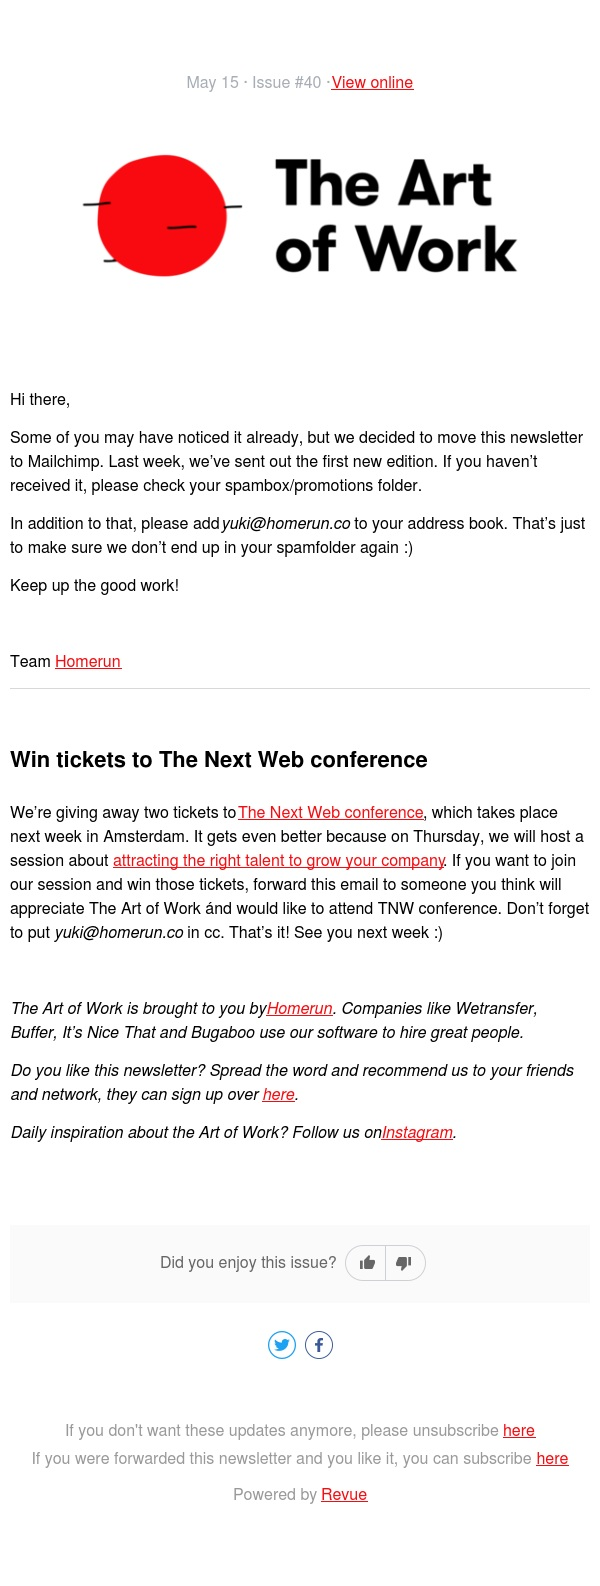 Don't miss our next newsletter (and win tickets to TNW)